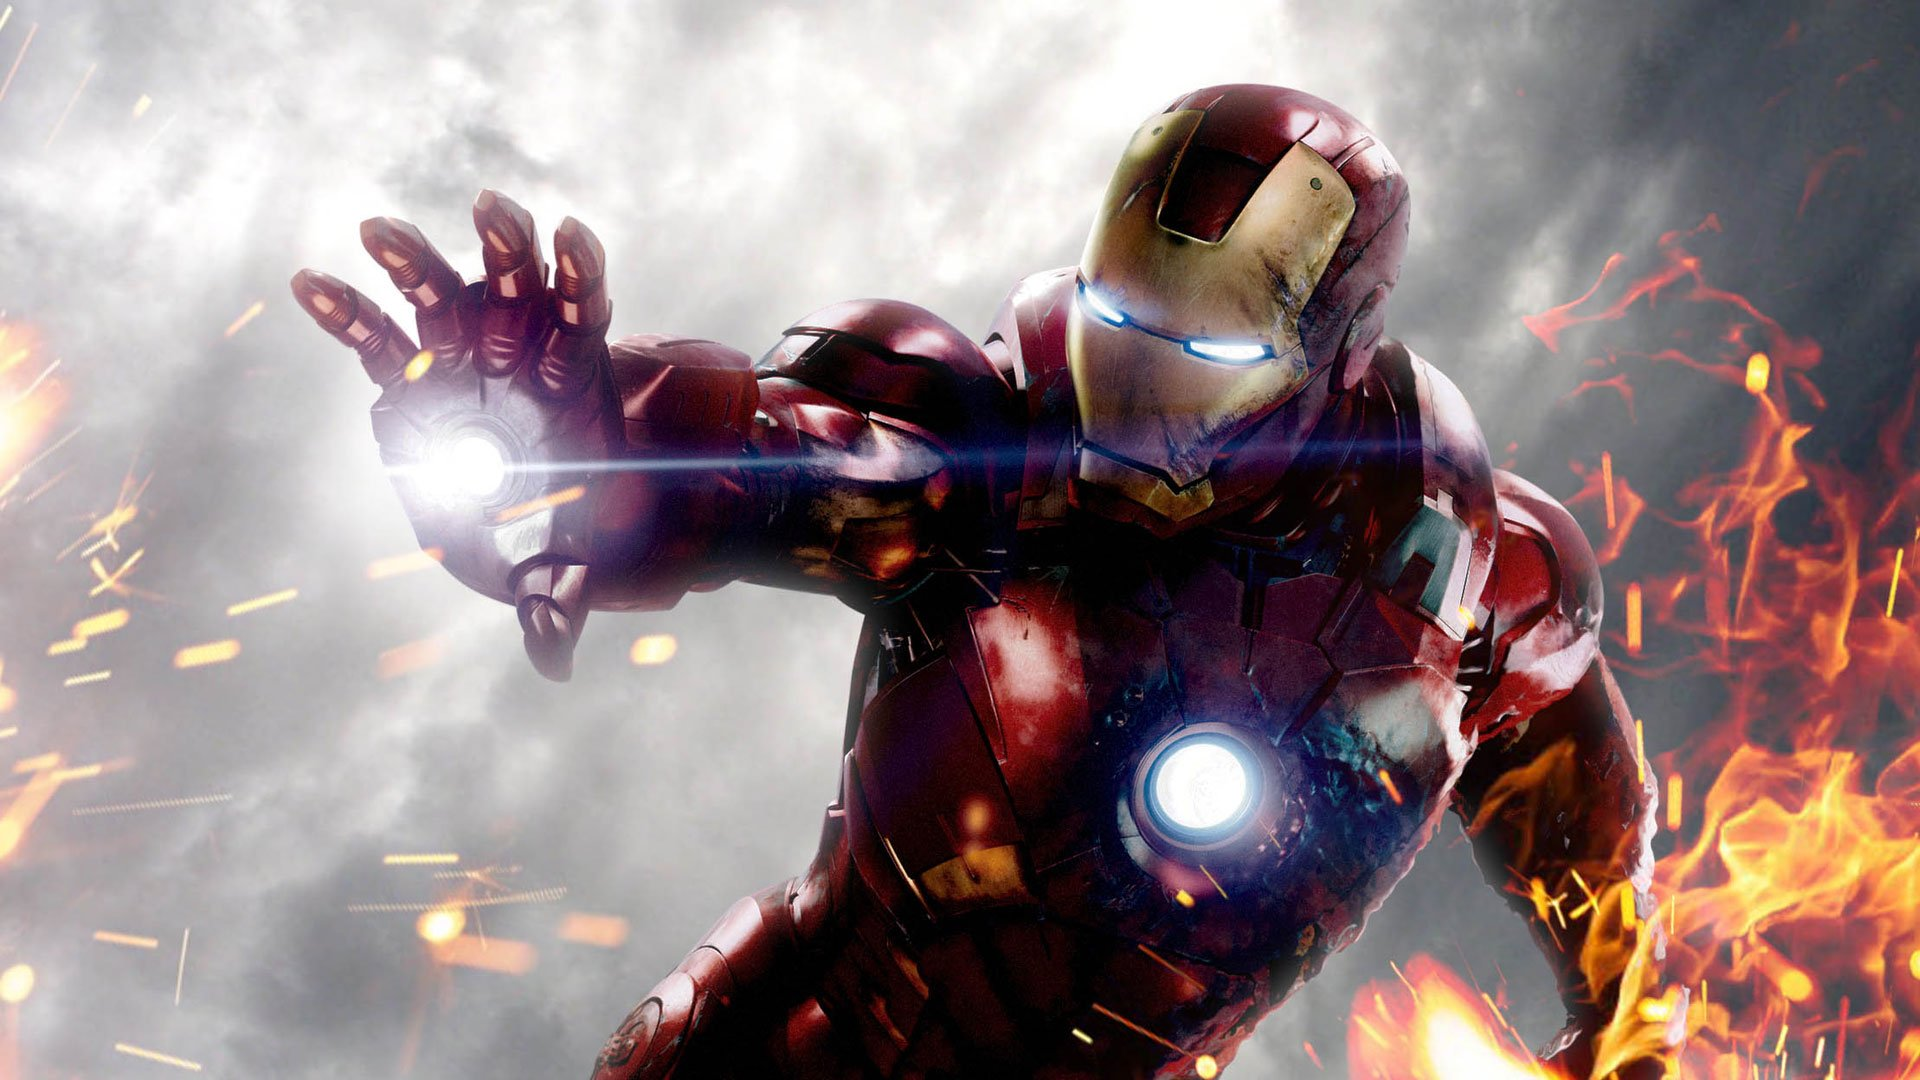 70 Ironman Wallpaper Hd On Wallpapersafari